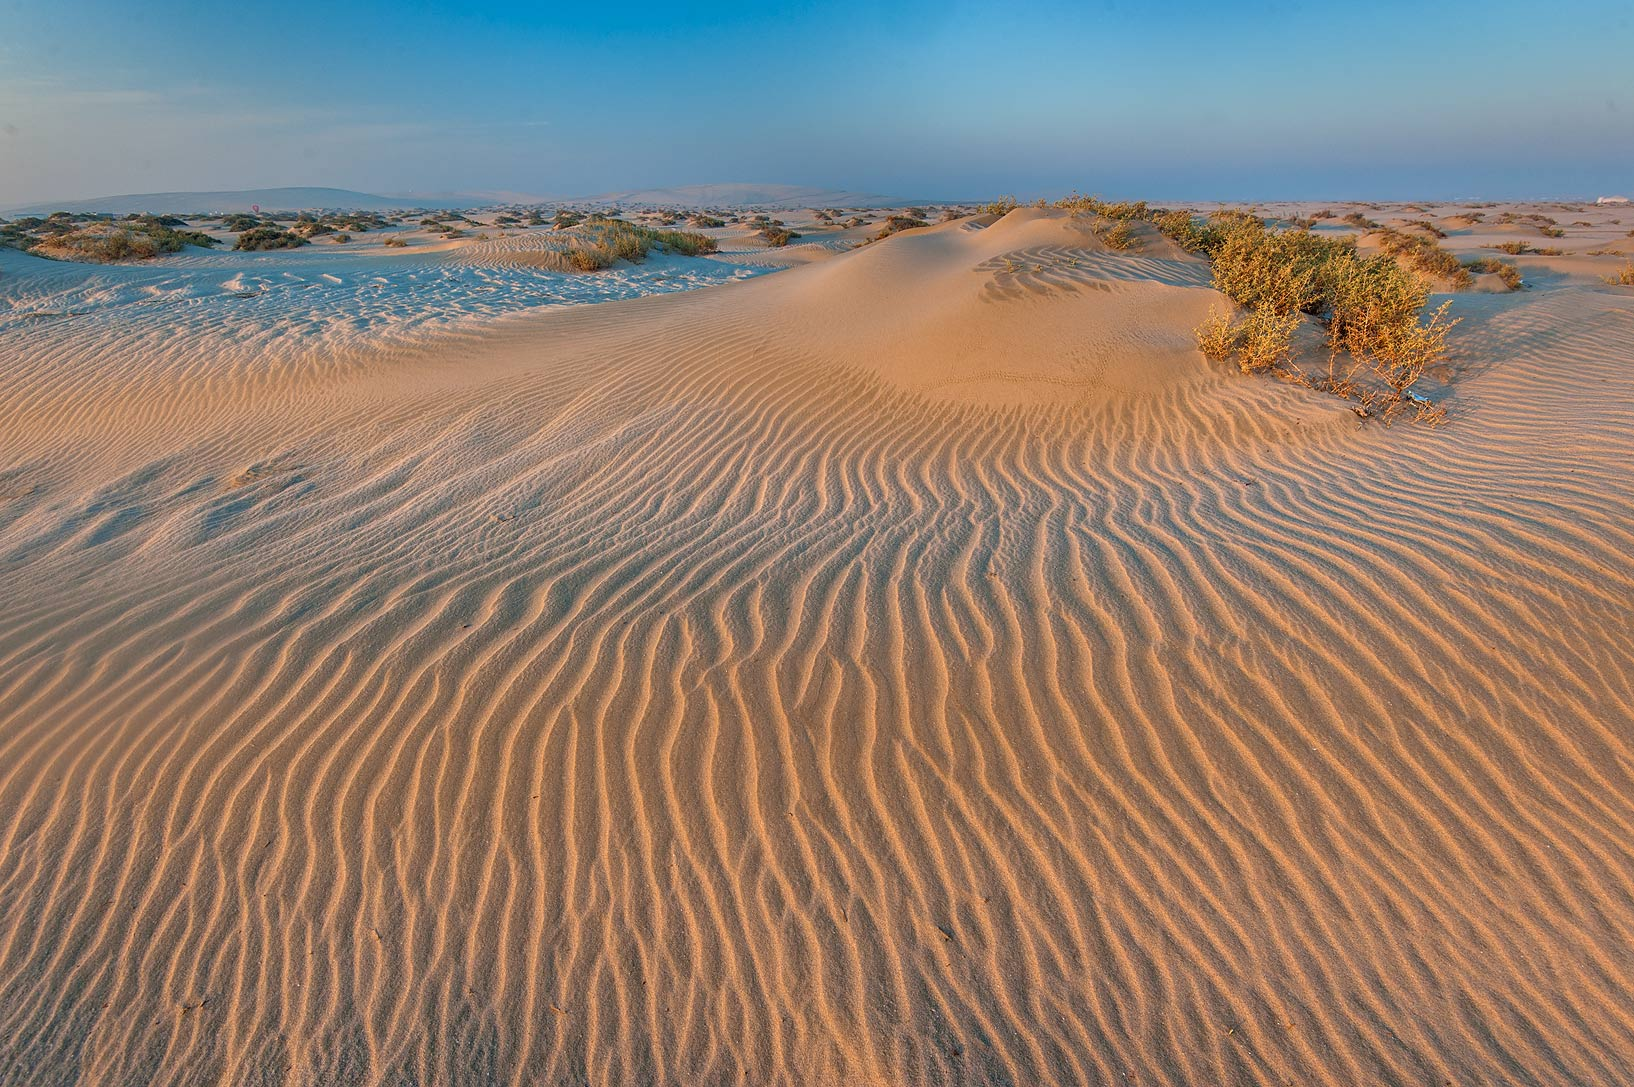 Field of windblown sand at sunrise near Sealine Beach Resort near Mesaieed. Southern Qatar